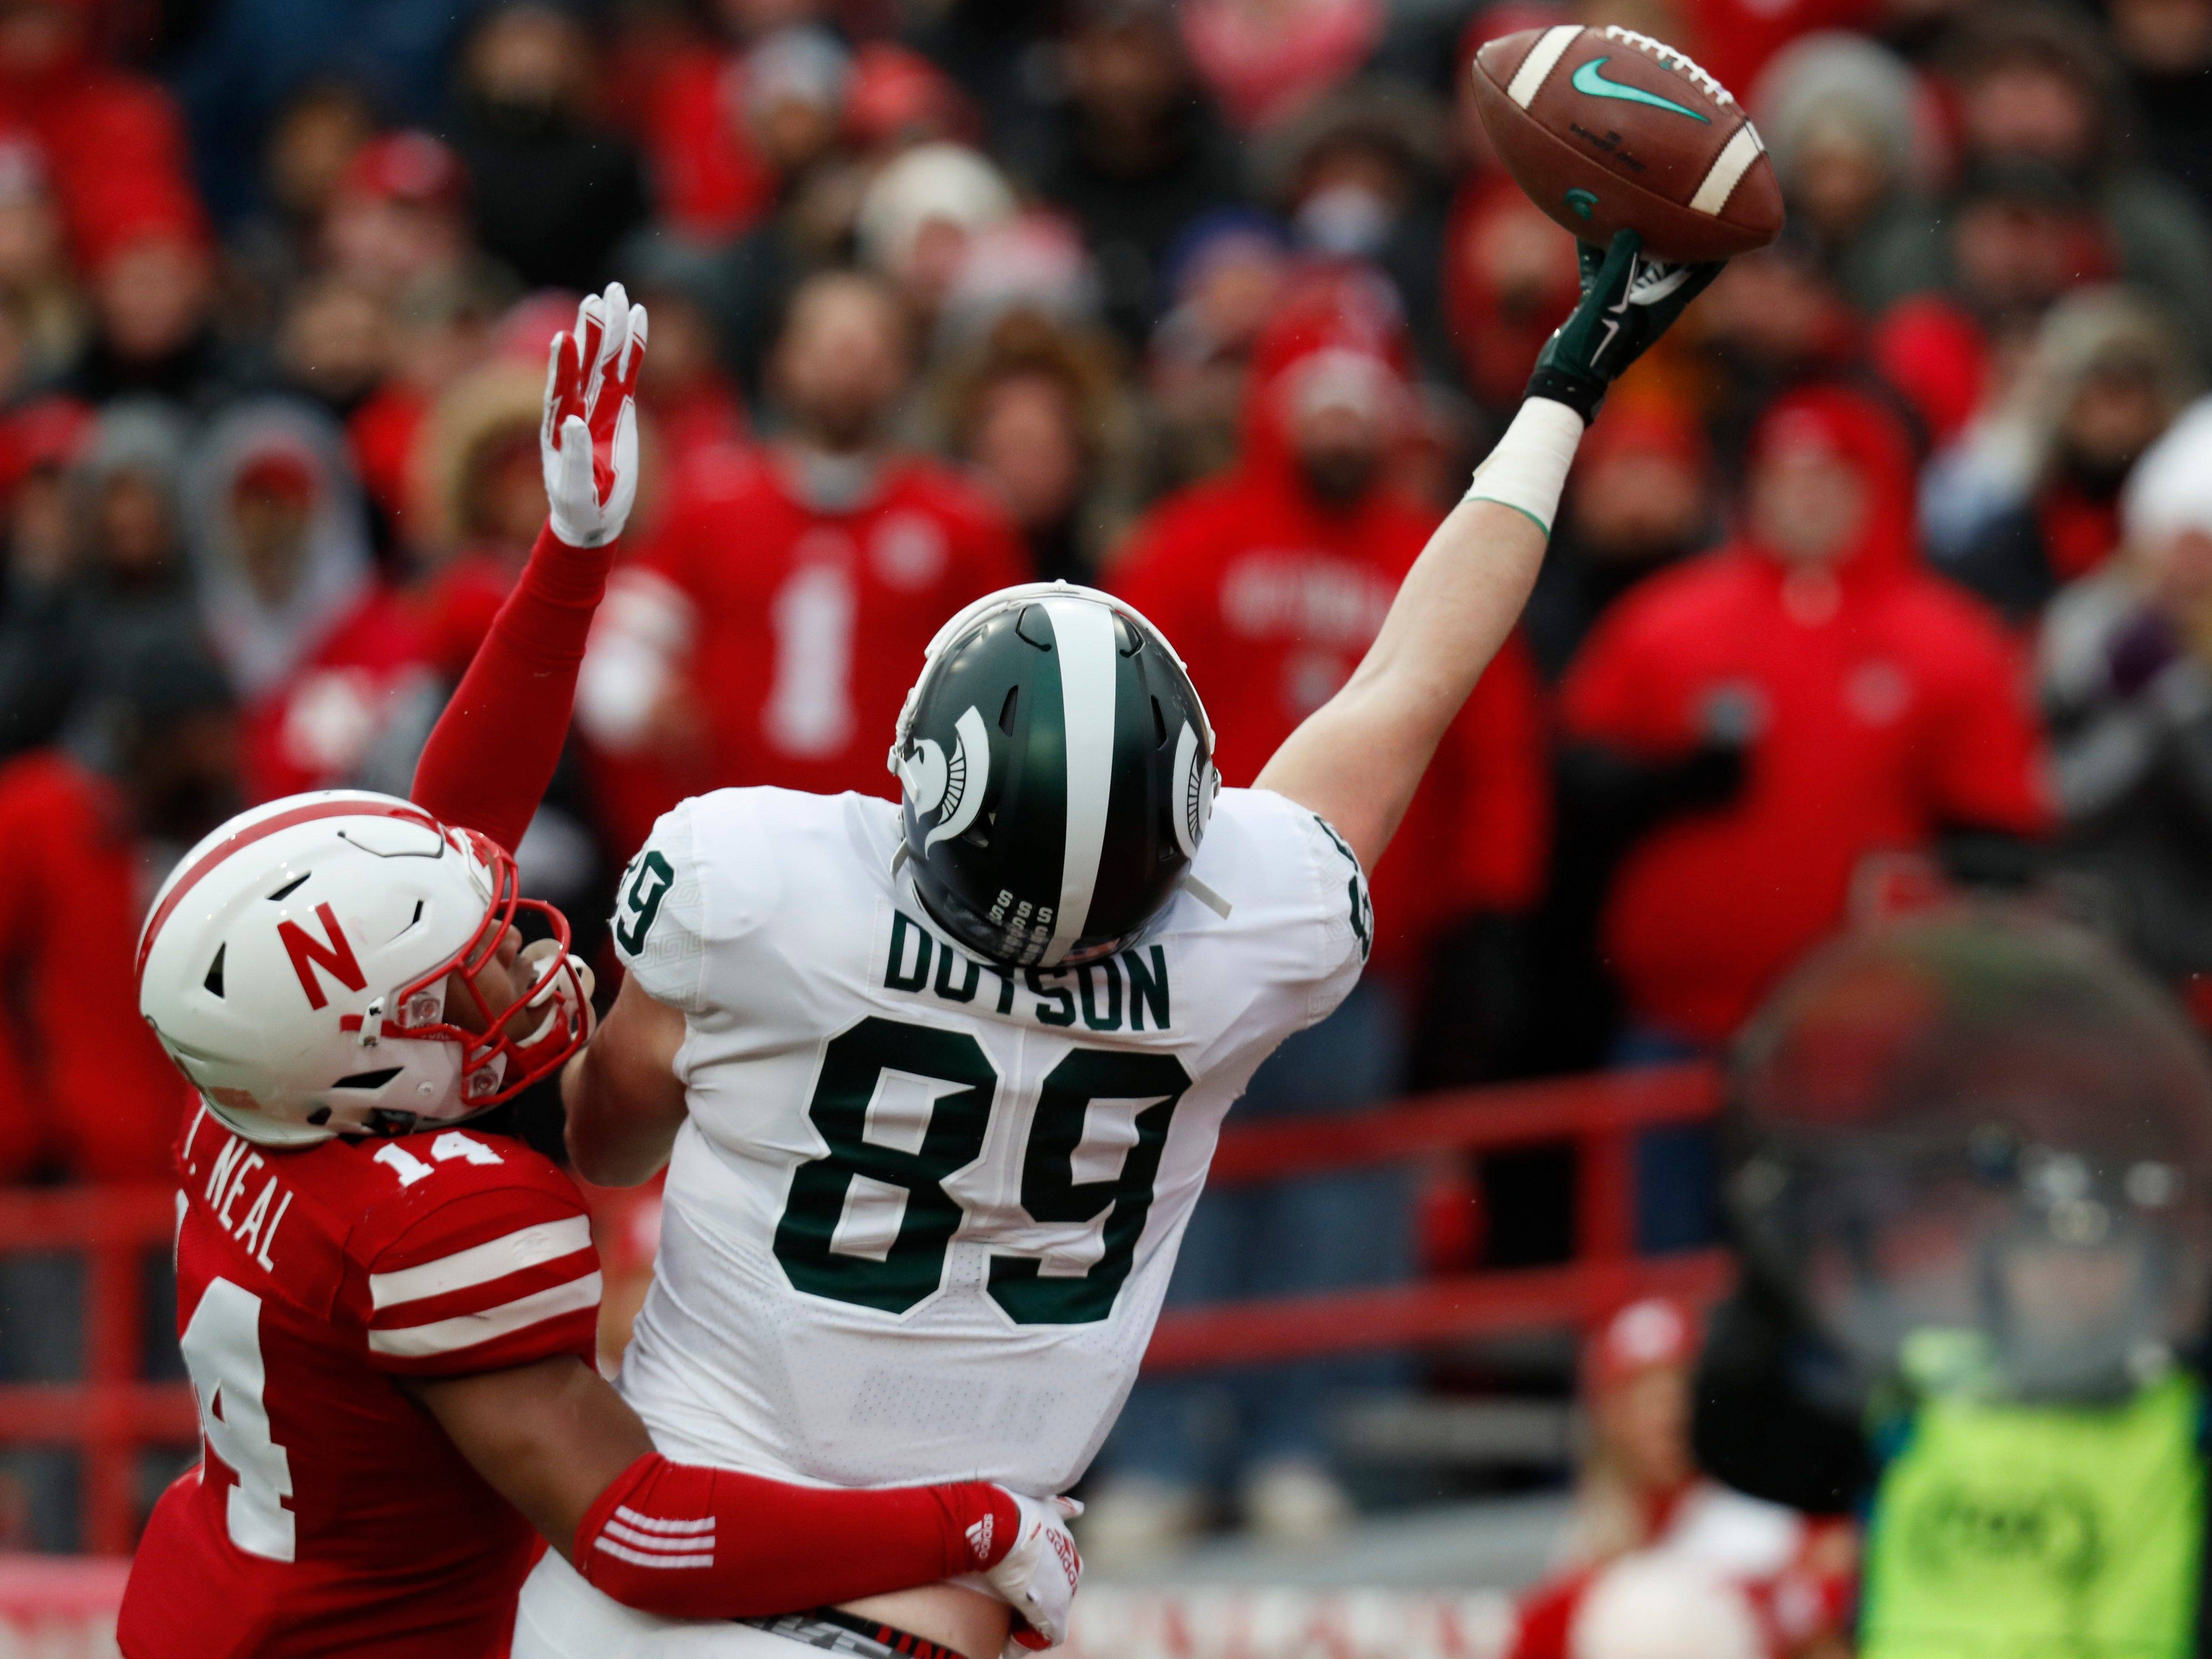 Michigan State tight end Matt Dotson can't quite haul in this touchdown pass against Nebraska Cornhuskers safety Tre Neal in the first half Saturday in Lincoln, Nebraska.